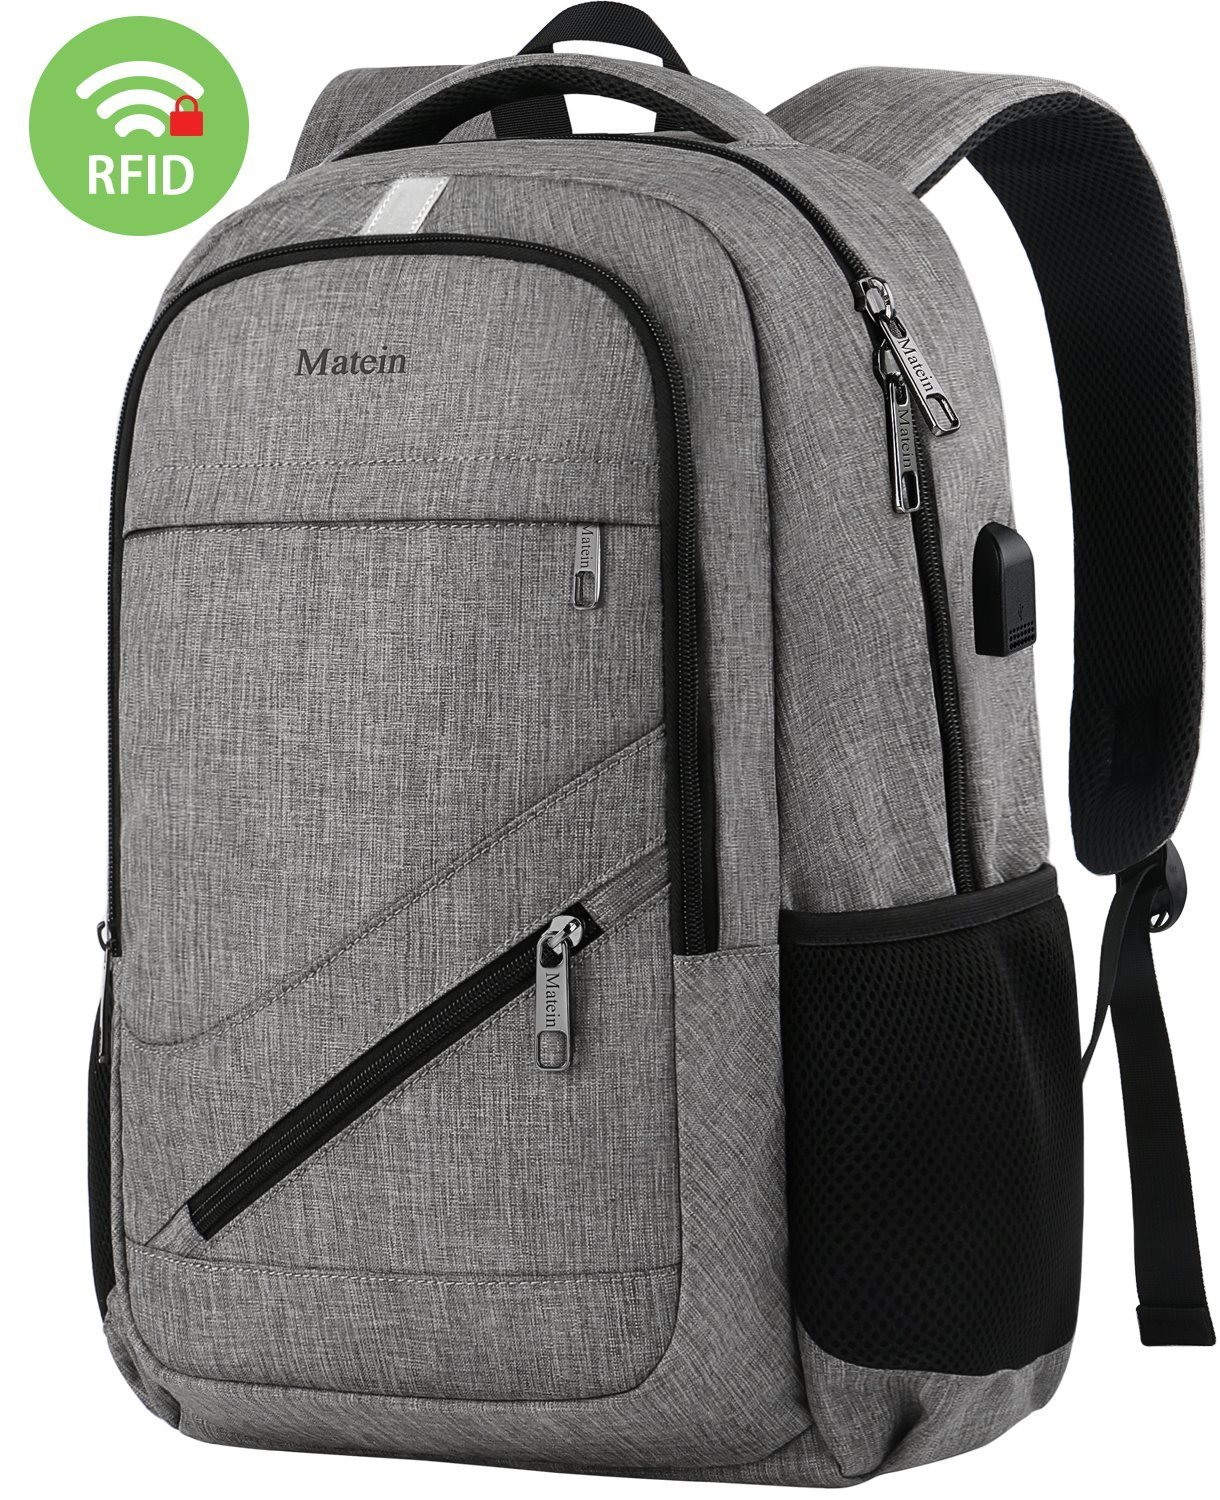 Travel Laptop Backpack,Durable Anti Theft High School Backpack for Women Men,Business Computer Laptop Bag with USB Charging Port,Waterproof College Student Bookbag Fit 15.6 Inch Laptop Notebook-Grey Everyworth EH-50001